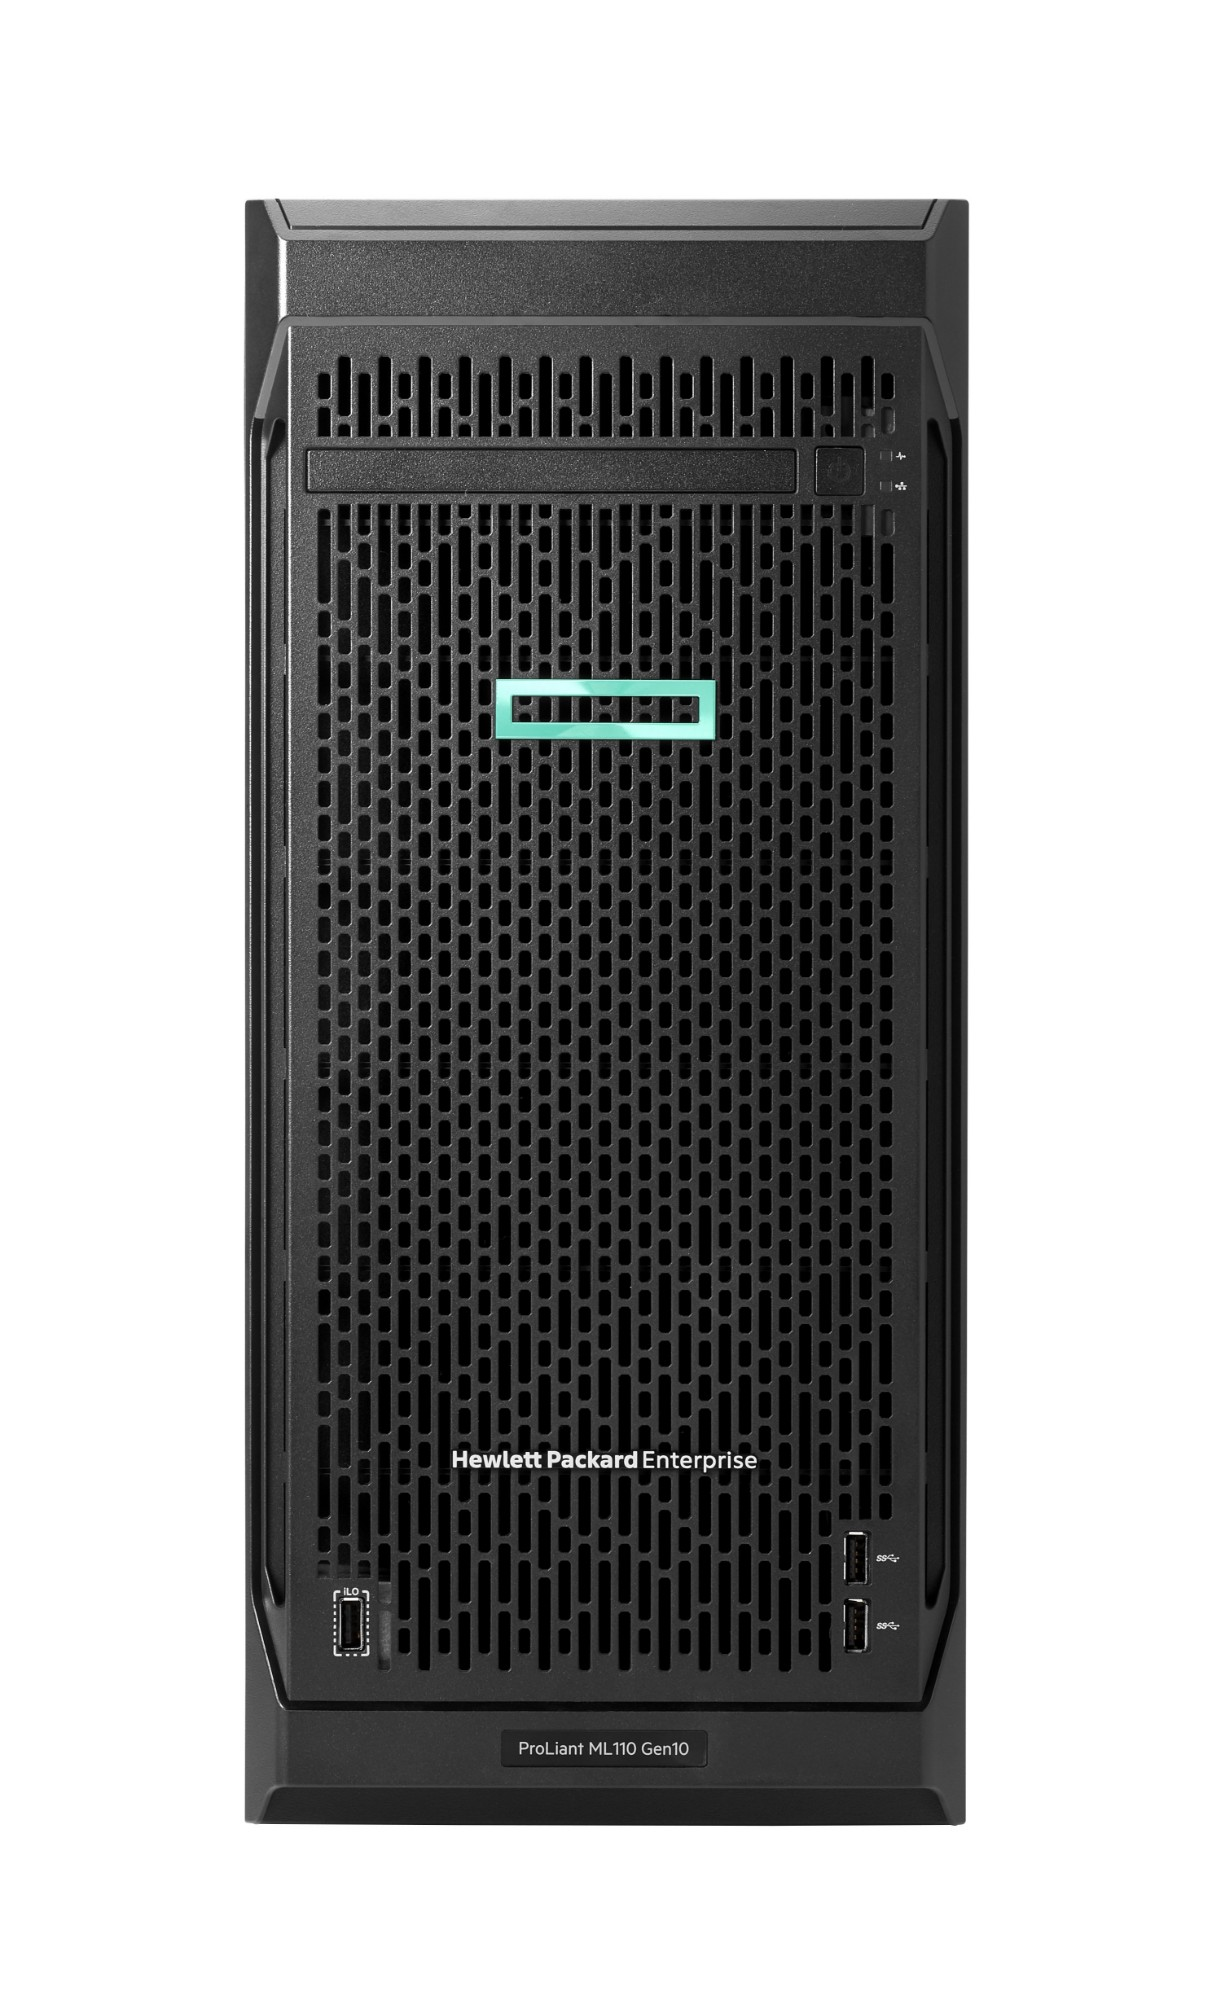 Hewlett Packard Enterprise ProLiant ML110 Gen10 servidor Intel® Xeon® Silver 2,1 GHz 16 GB DDR4-SDRAM 96 TB Torre (4,5U) 550 W